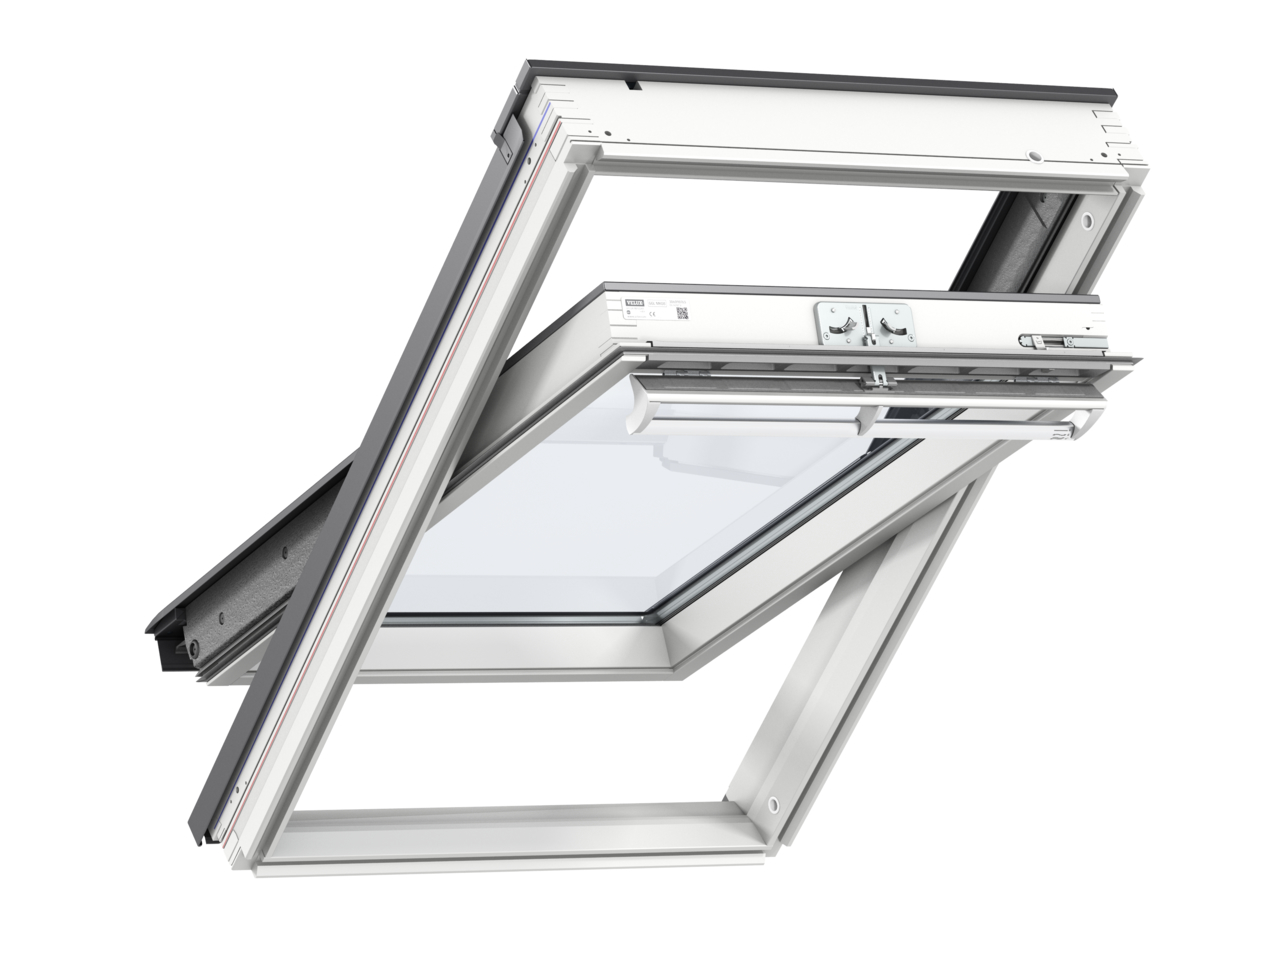 Velux GGL PK10 940 x 1600mm Centre Pivot 62Pane Roof Window - White Painted